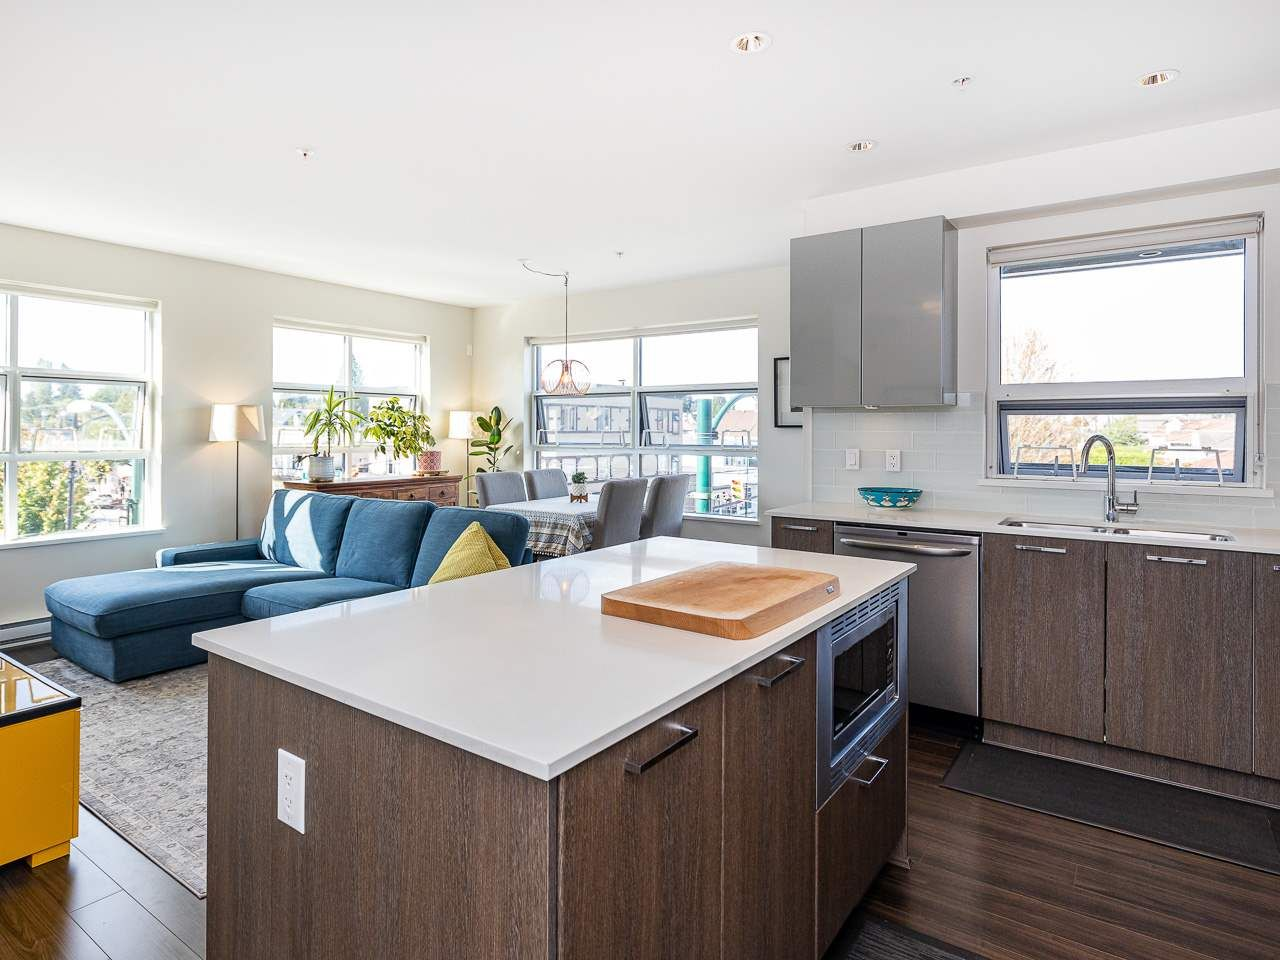 Photo 8: Photos: 306 202 E 24TH AVENUE in Vancouver: Main Condo for sale (Vancouver East)  : MLS®# R2406713